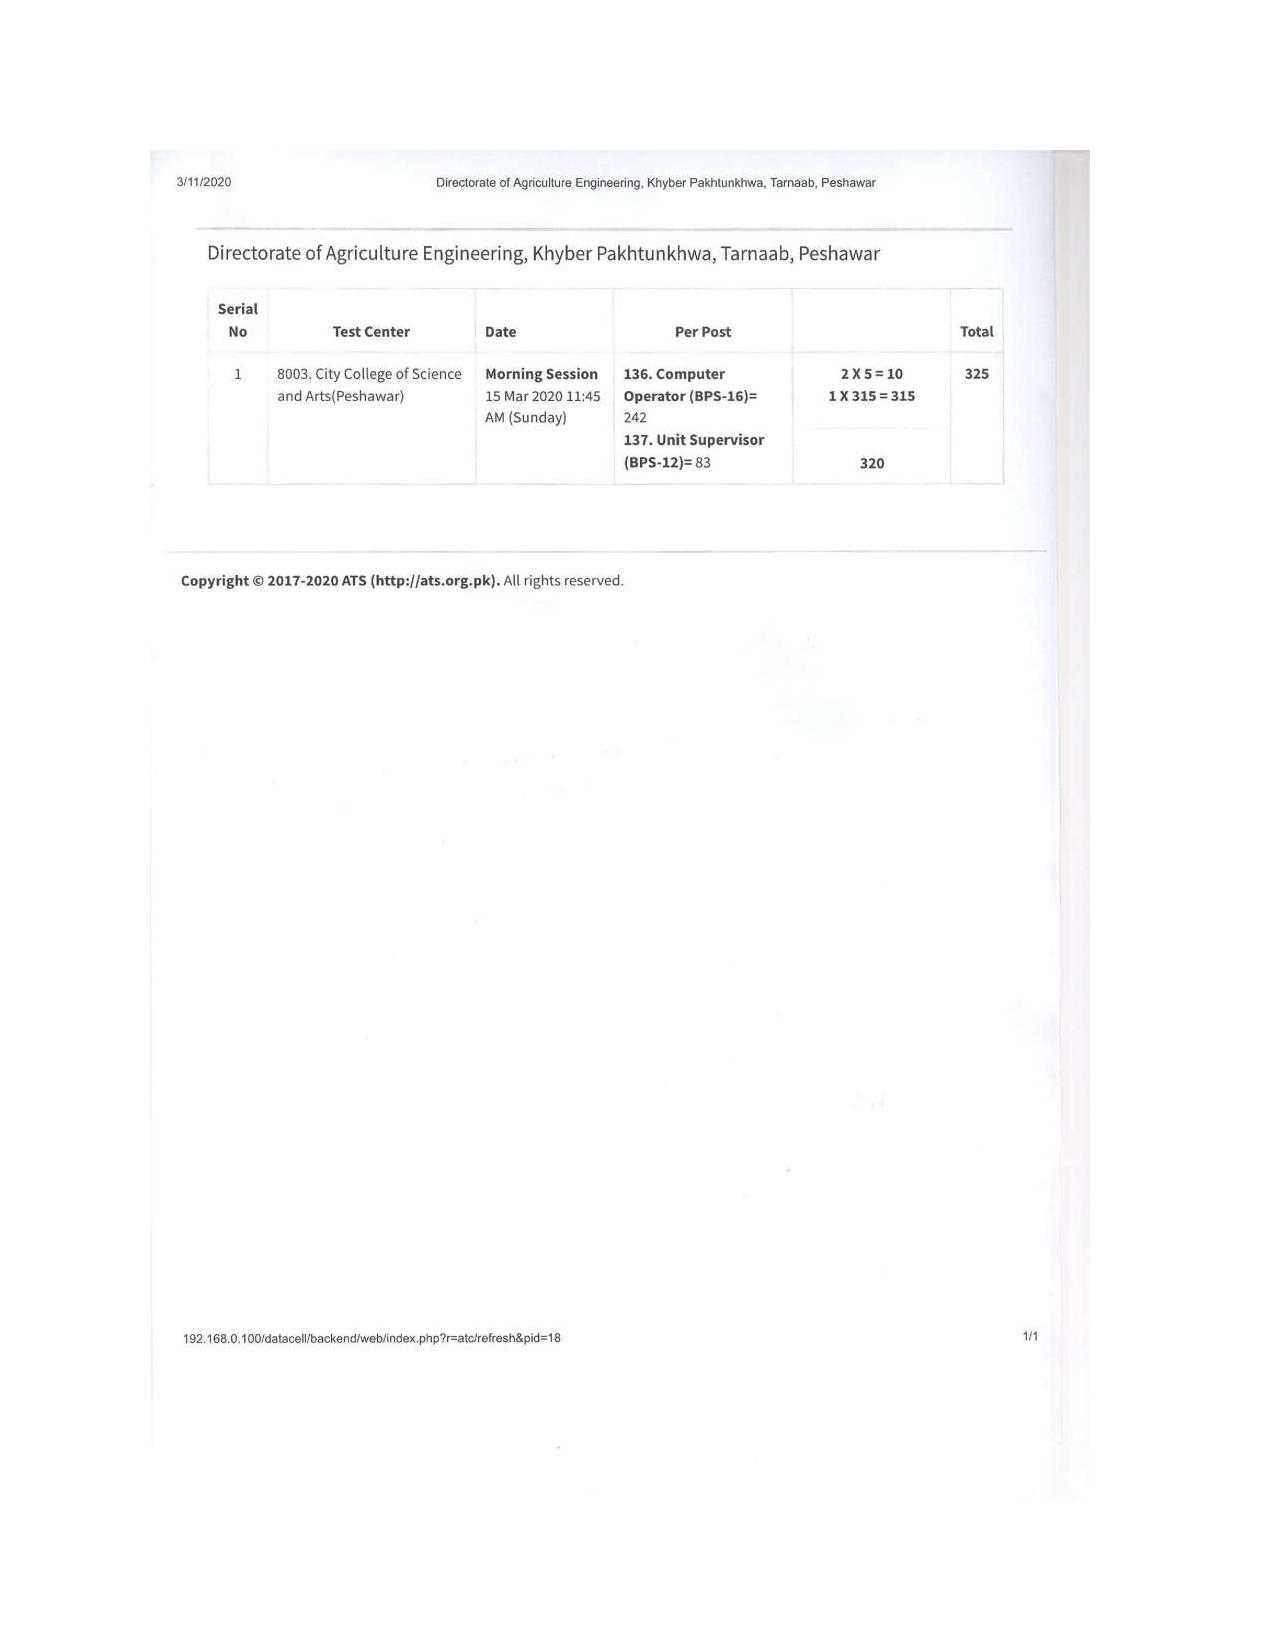 Schedule_of_written_test_for_variouspost_in_the_Directorate_of_Agriculture_Engeering-page-002